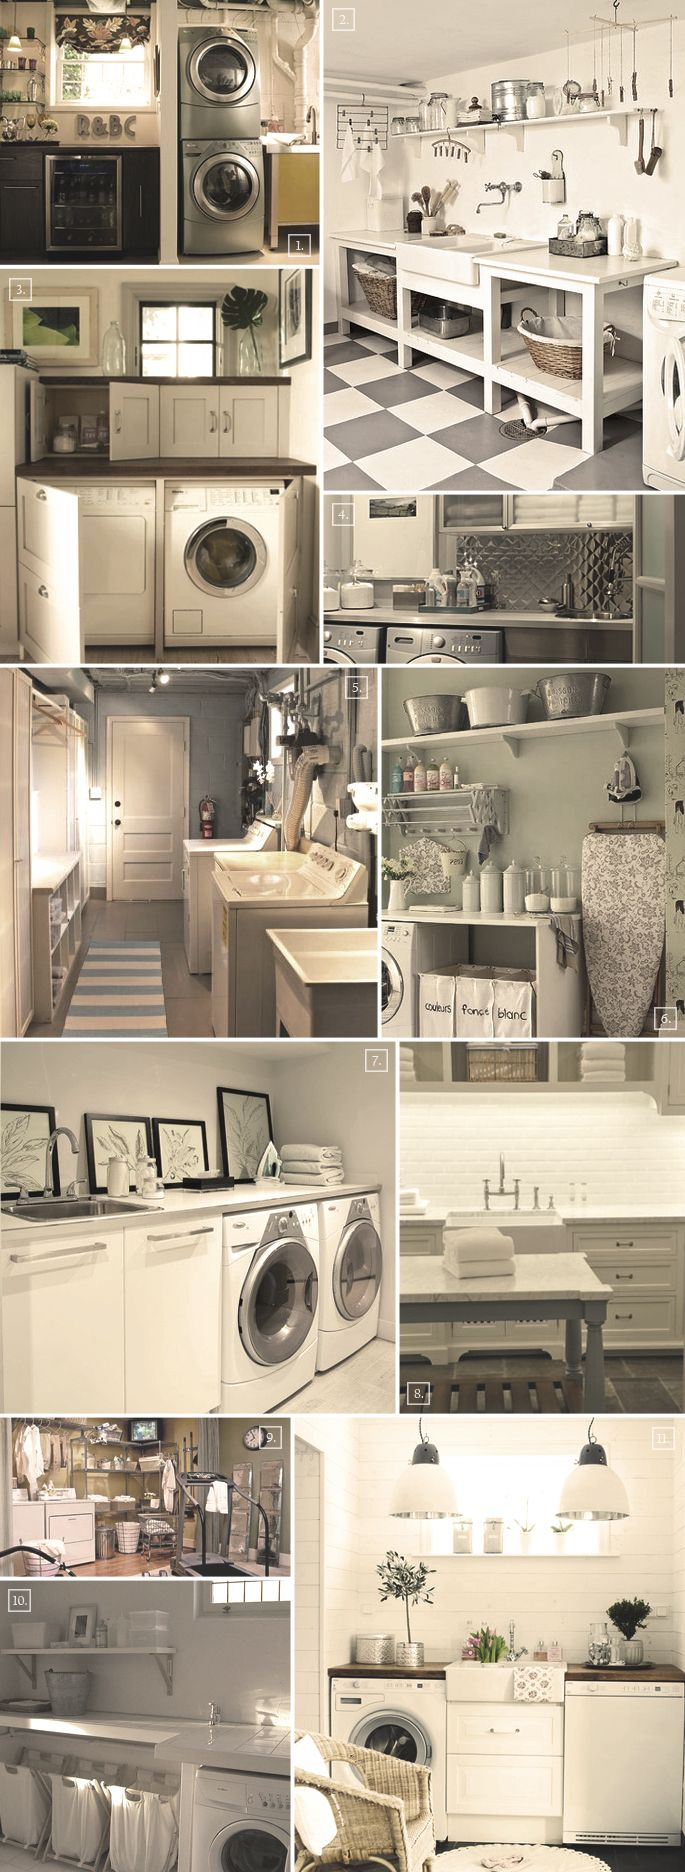 best laundry room ideas images on pinterest bathroom kitchens